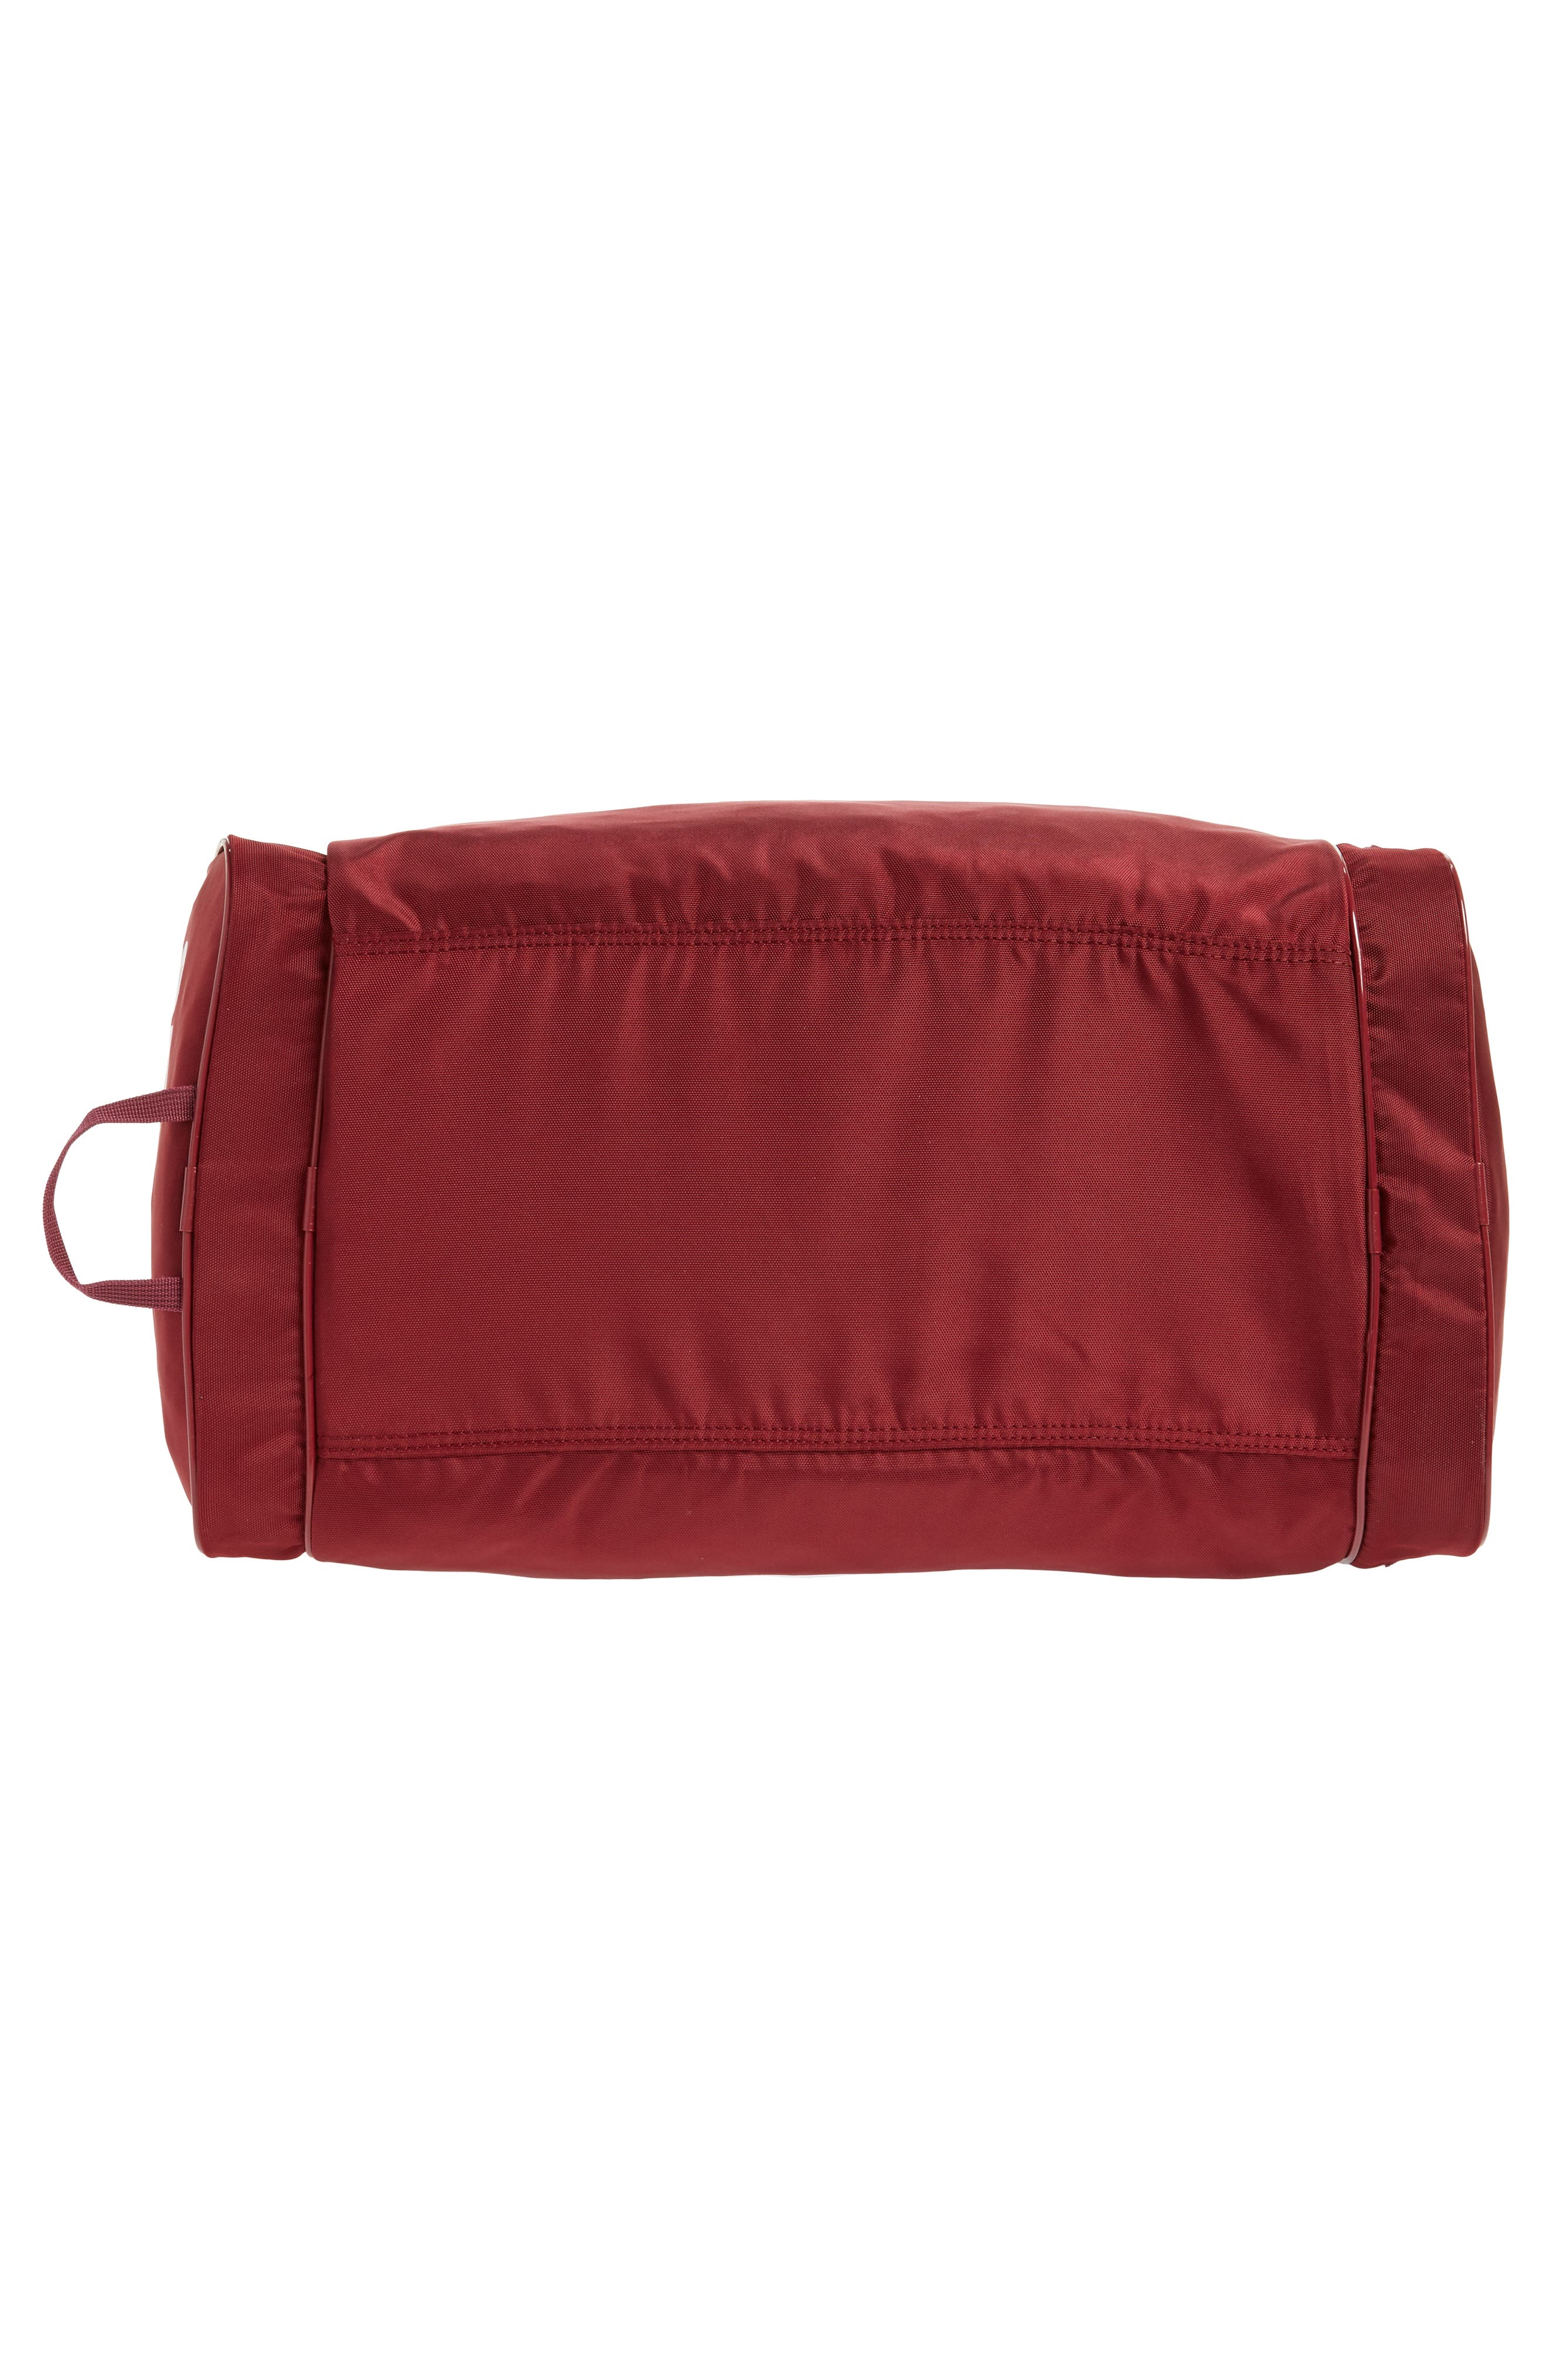 adidas Original Santiago Duffel Bag,                             Alternate thumbnail 6, color,                             COLLEGIATE BURGUNDY/ WHITE